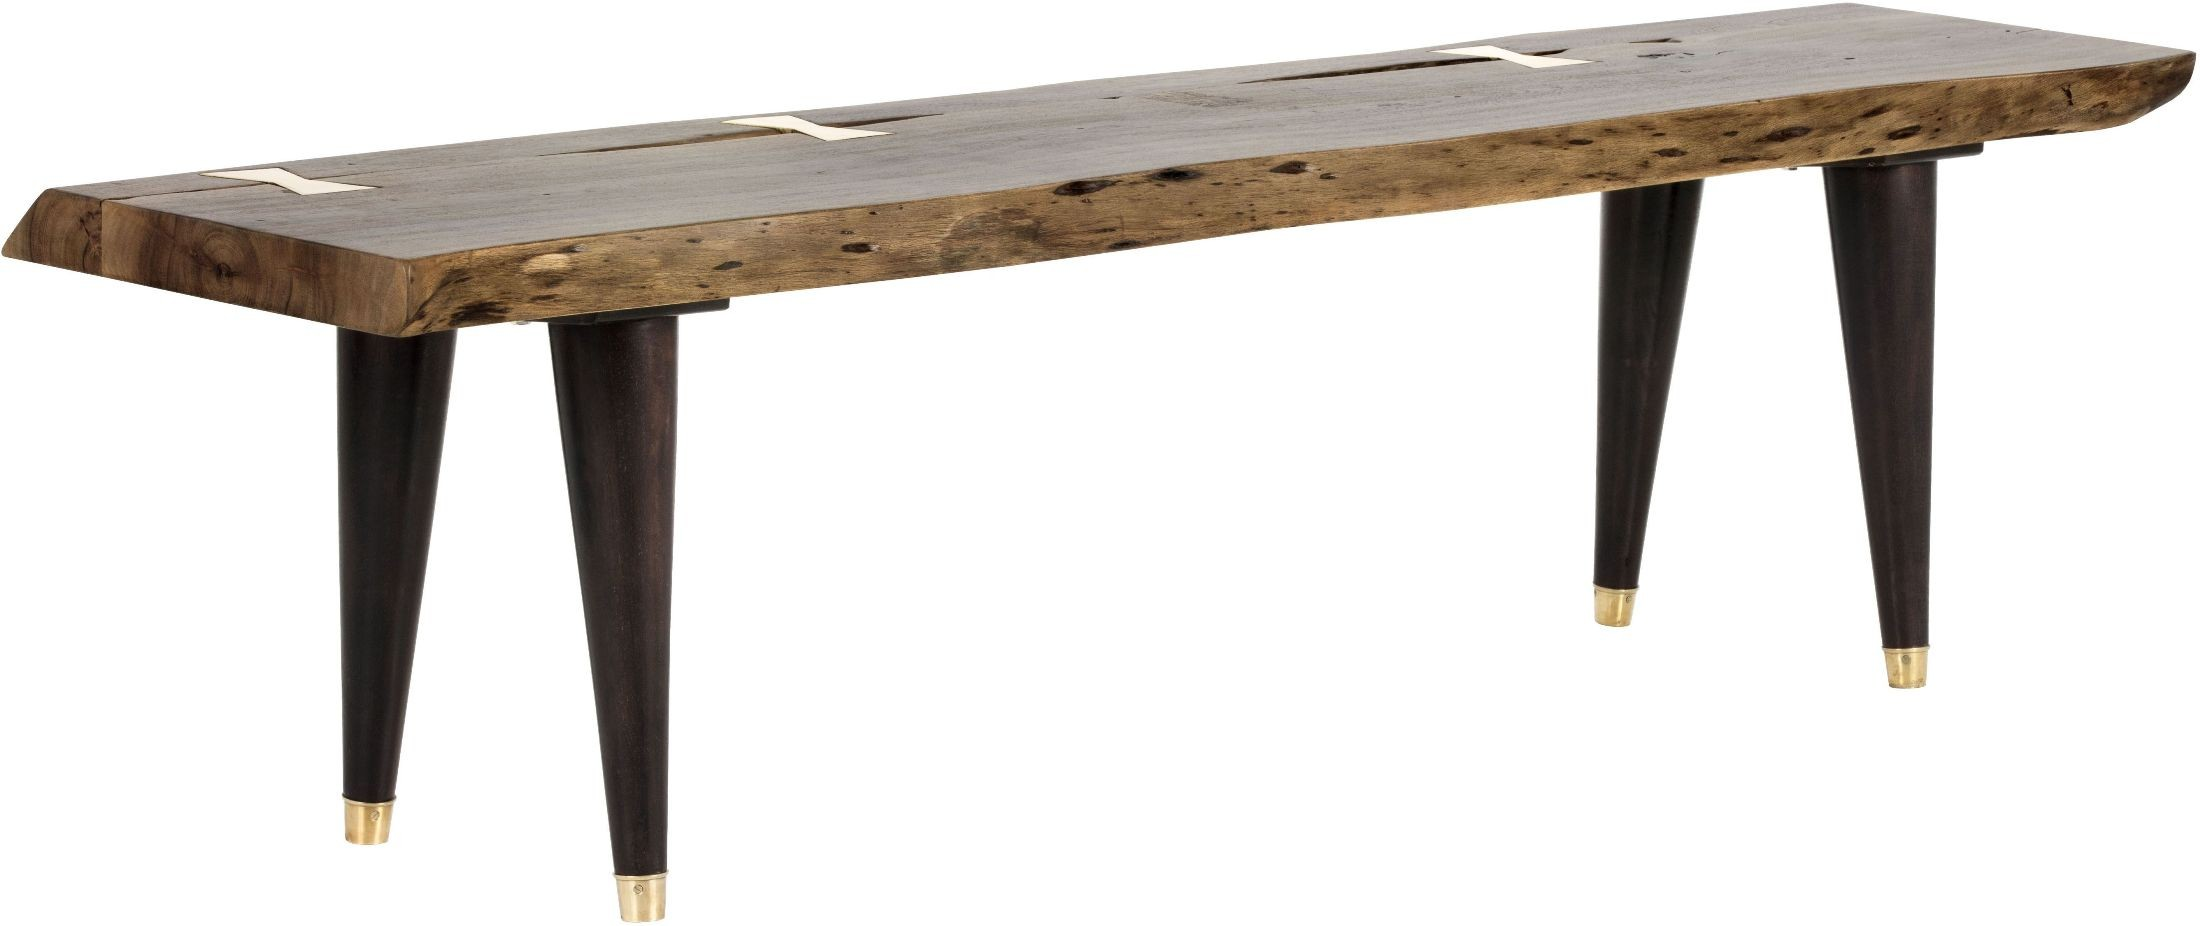 how to make a live edge bench